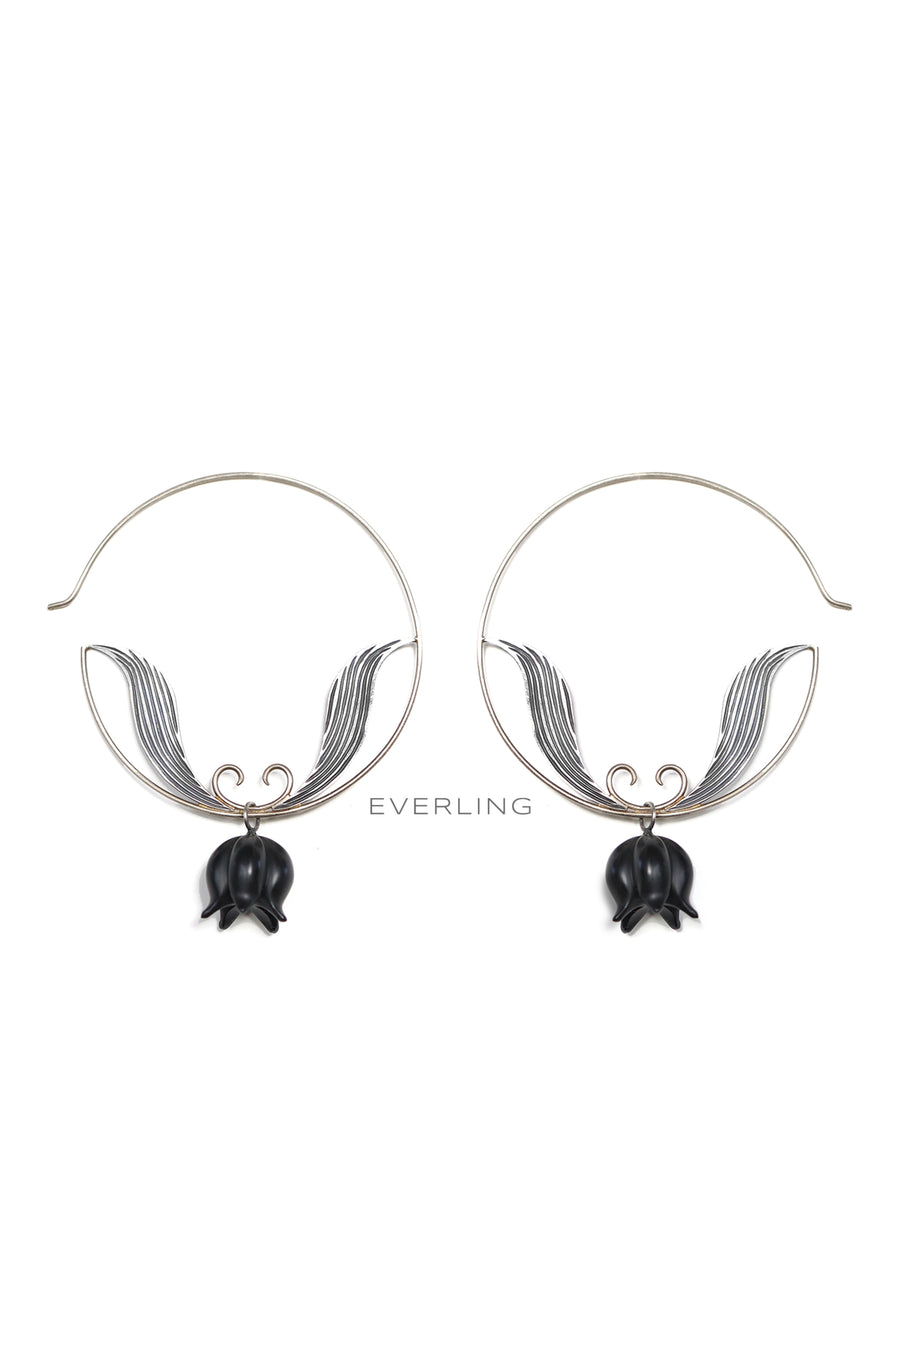 Recycled 14K Palladium White Gold and Sterling Silver Hoop earrings with Carved Onyx beads. #hoopearrings #organicjewelry www.everlingjewelry.com